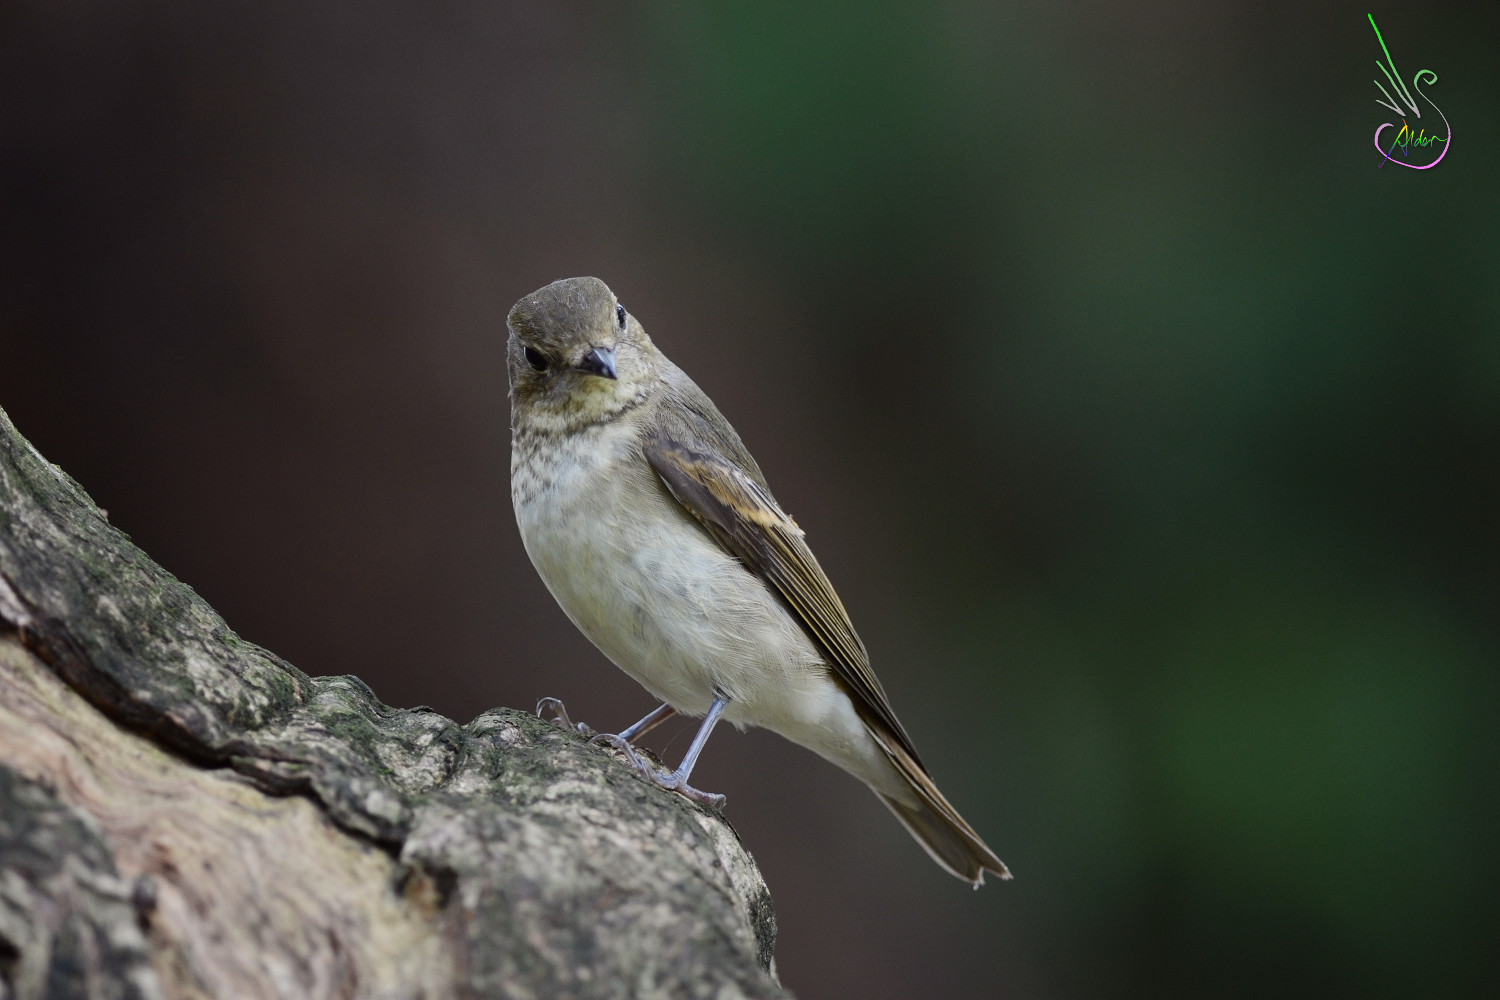 Narcissus_Flycatcher_6374